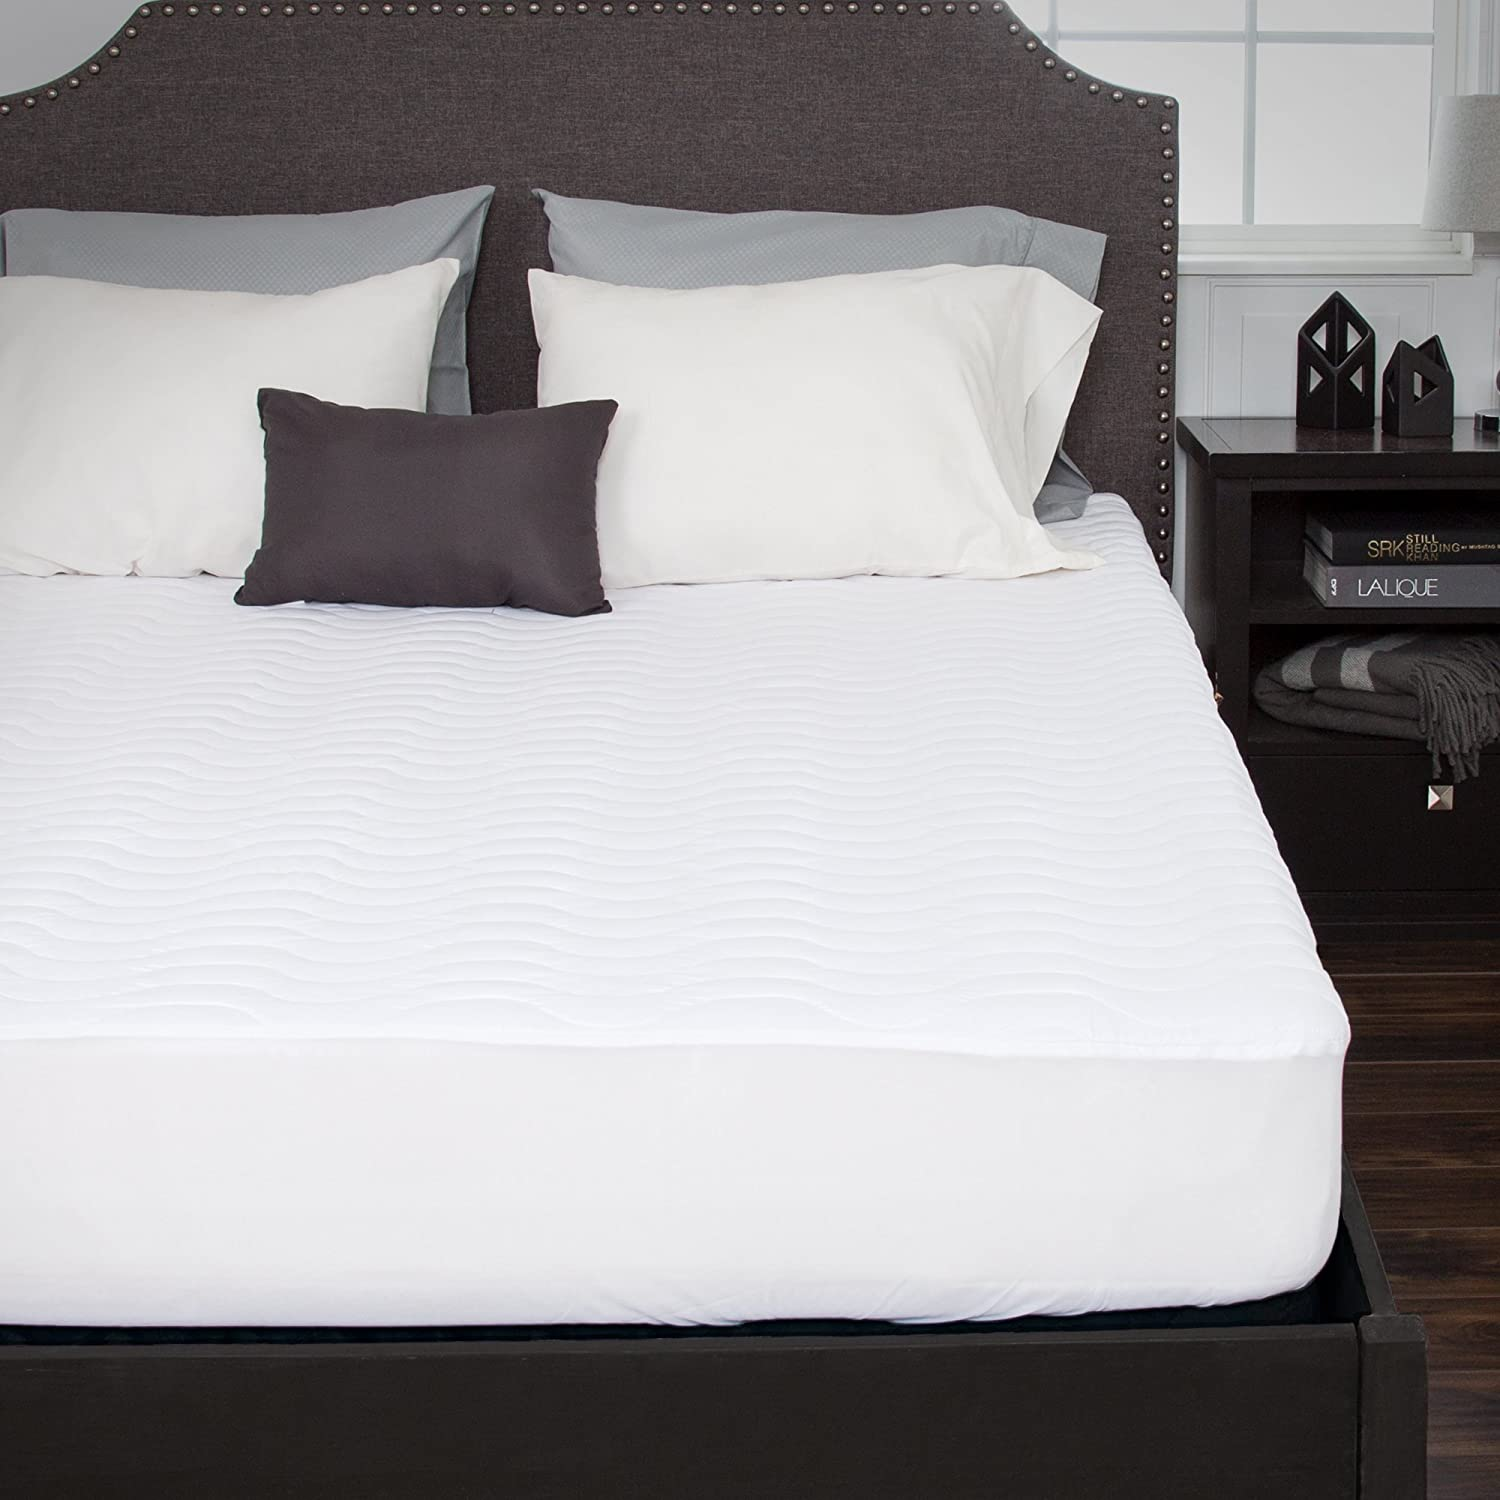 blueestone 64-19-K Down Alternative Mattress Pad with Fitted Skirt, King